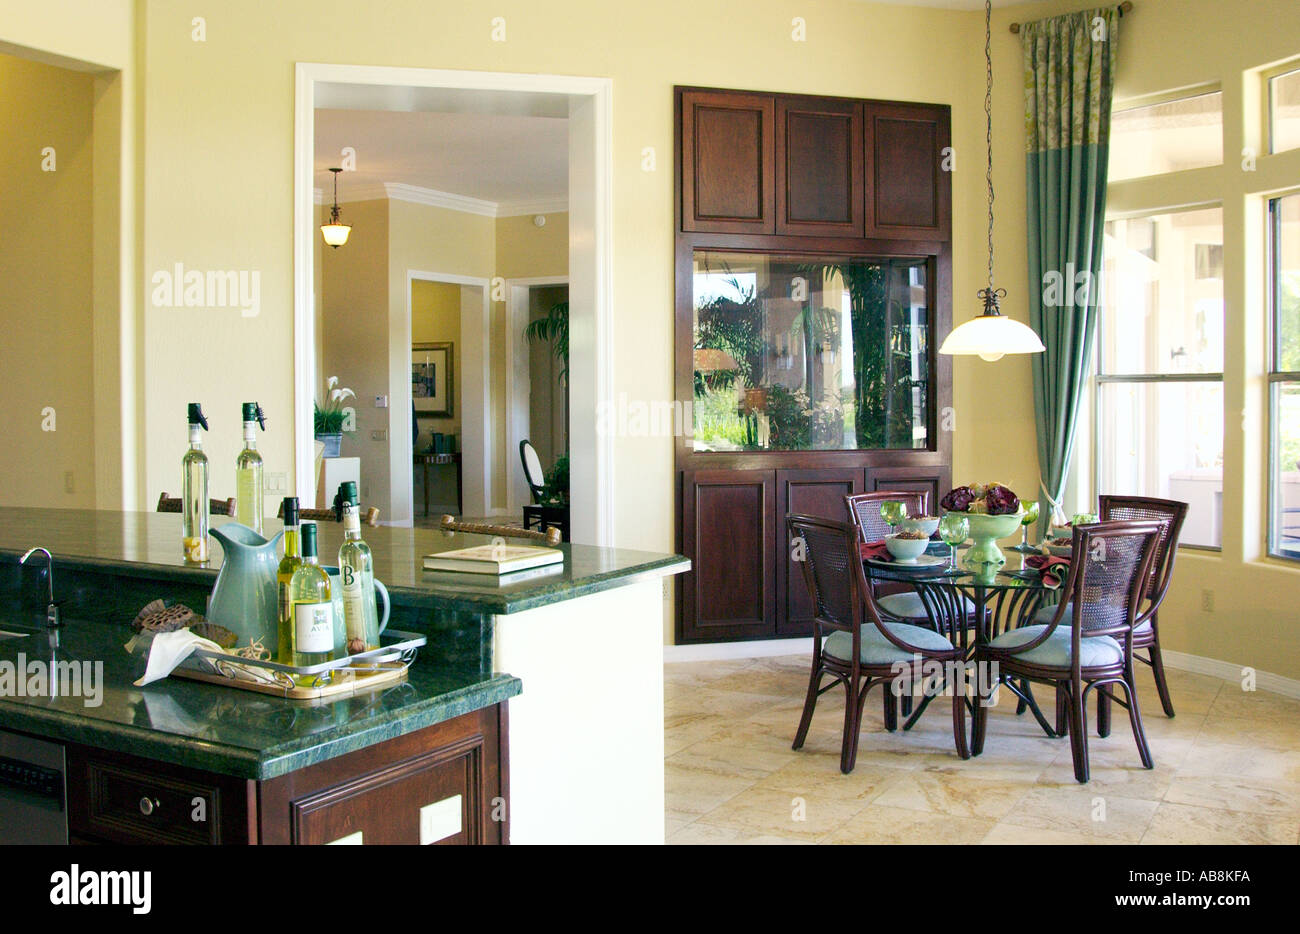 Astounding Sun City Grand Model Homes In Surprise Arizona Usa Stock Home Interior And Landscaping Oversignezvosmurscom